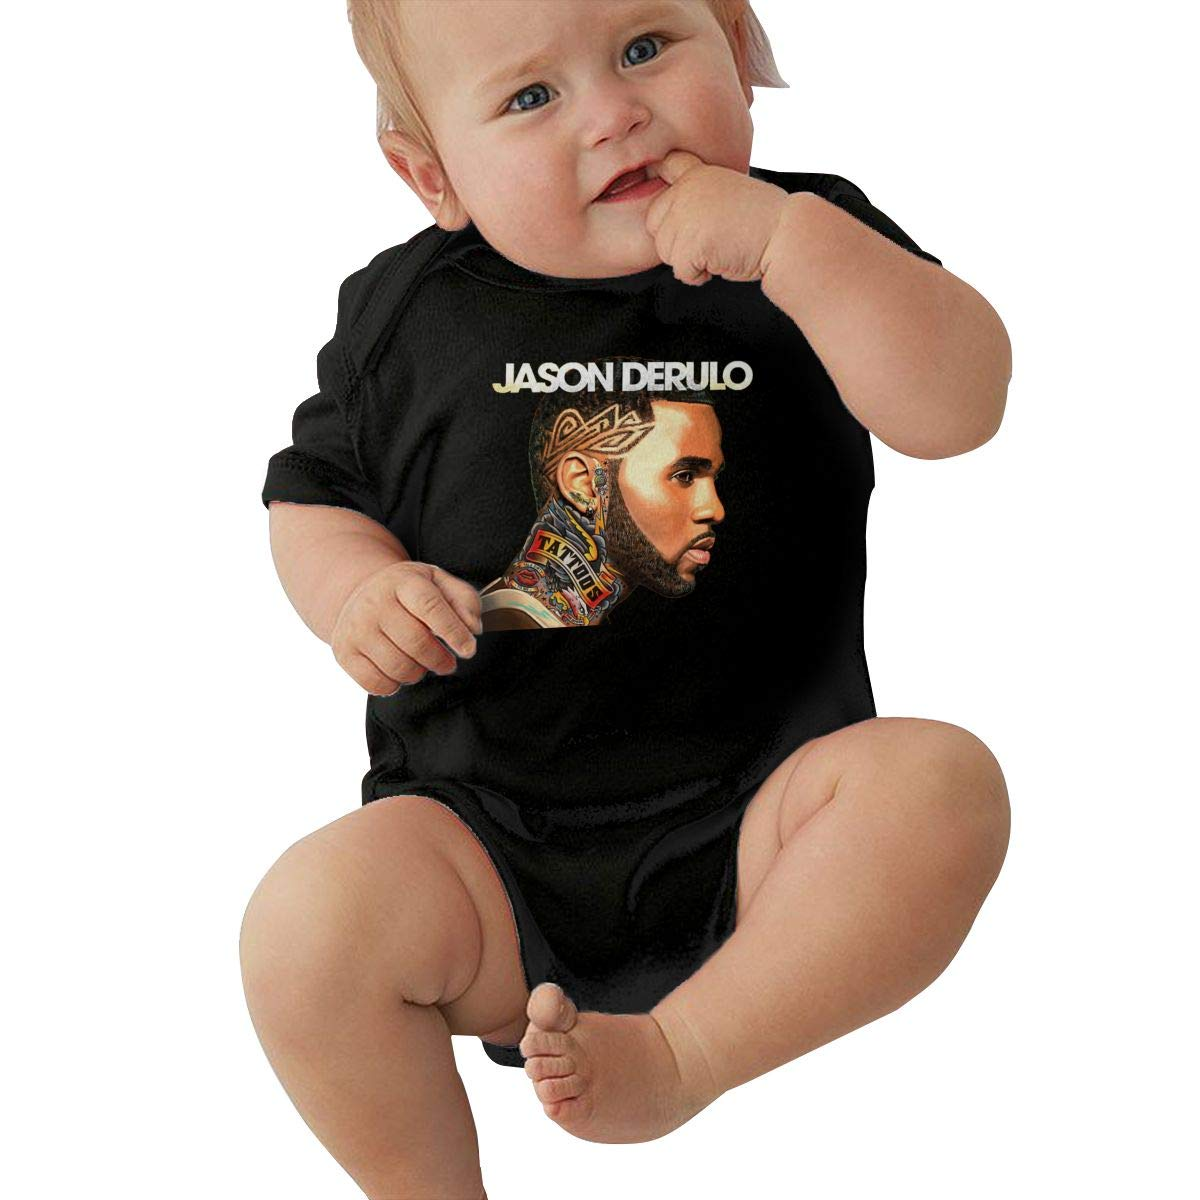 SusanHuling Jason Derulo Unisex Baby Boys Girls Romper Bodysuit Infant Funny Jumpsuit